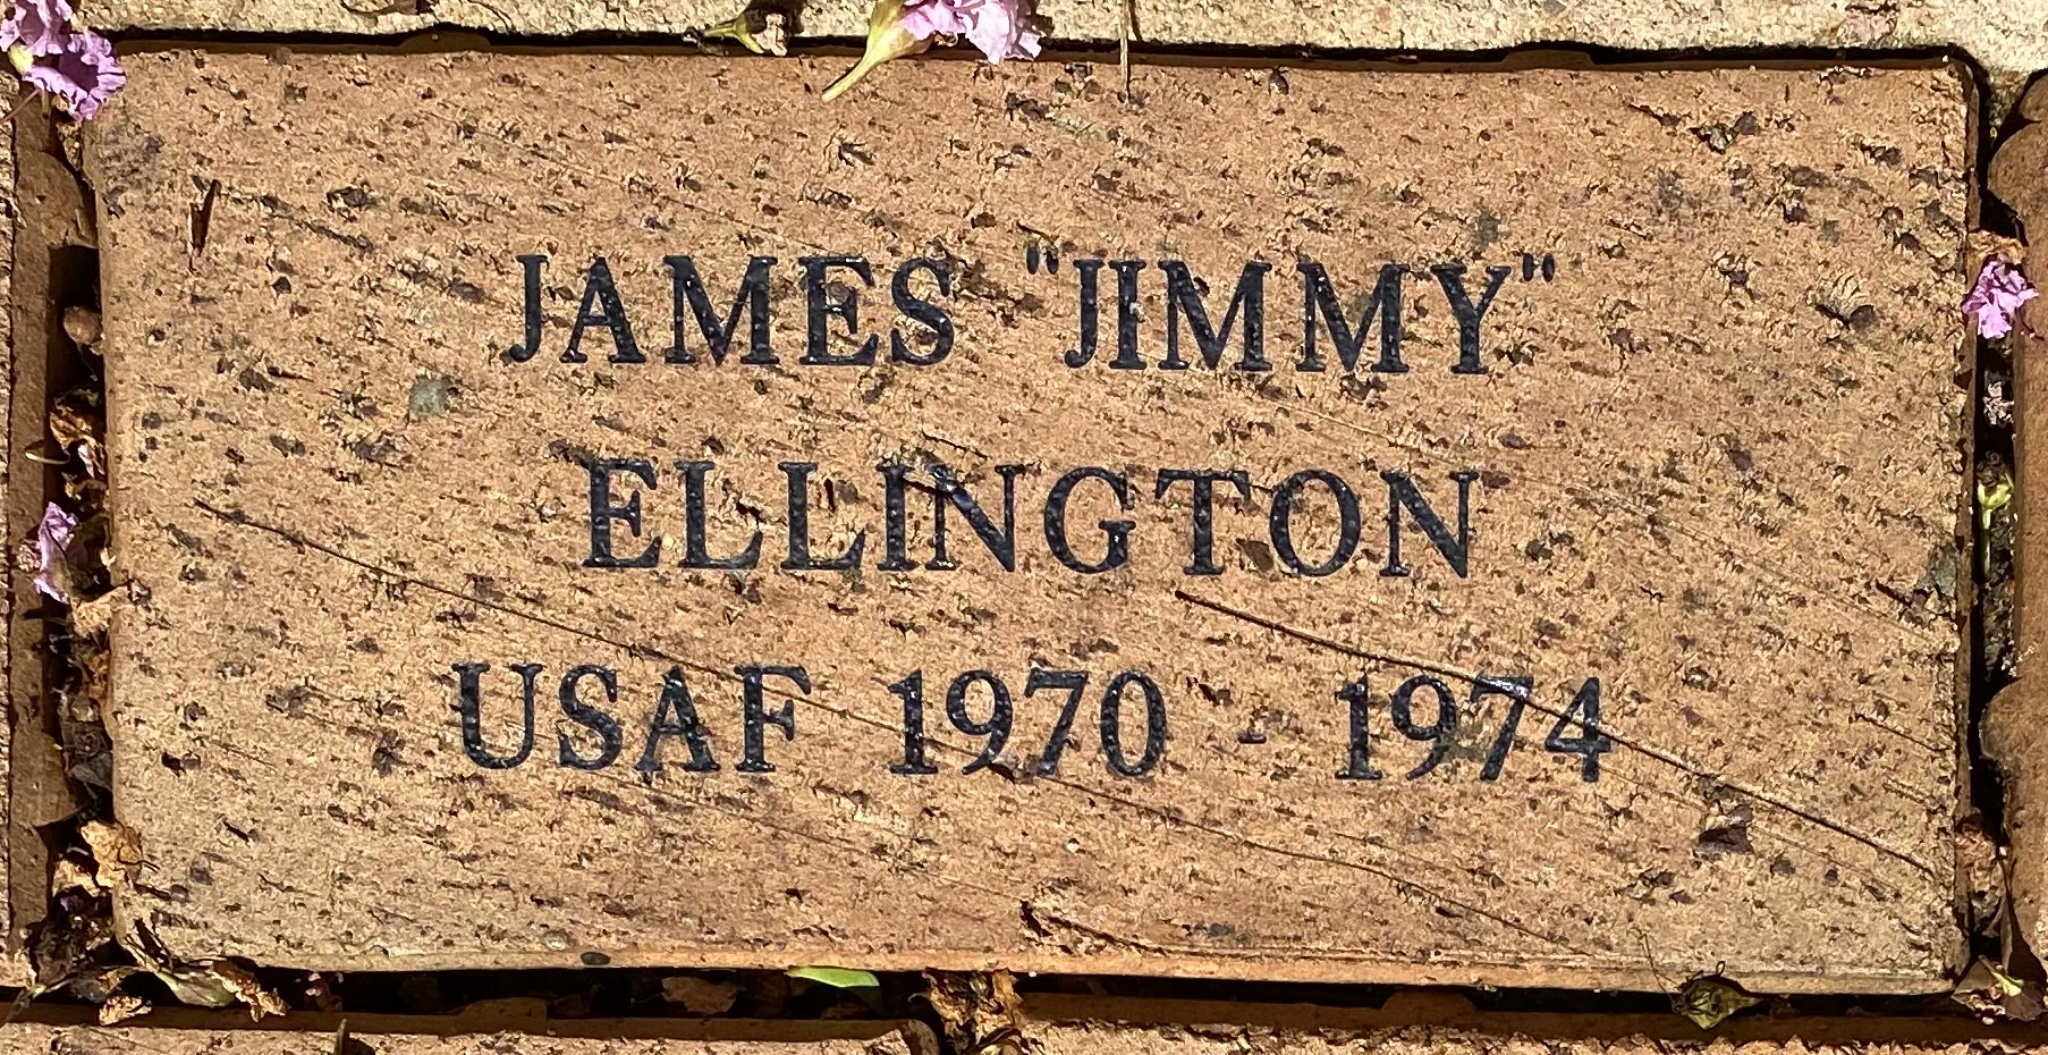 "JAMES ""JIMMY"" ELLINGTON USAF 1970 – 1974"